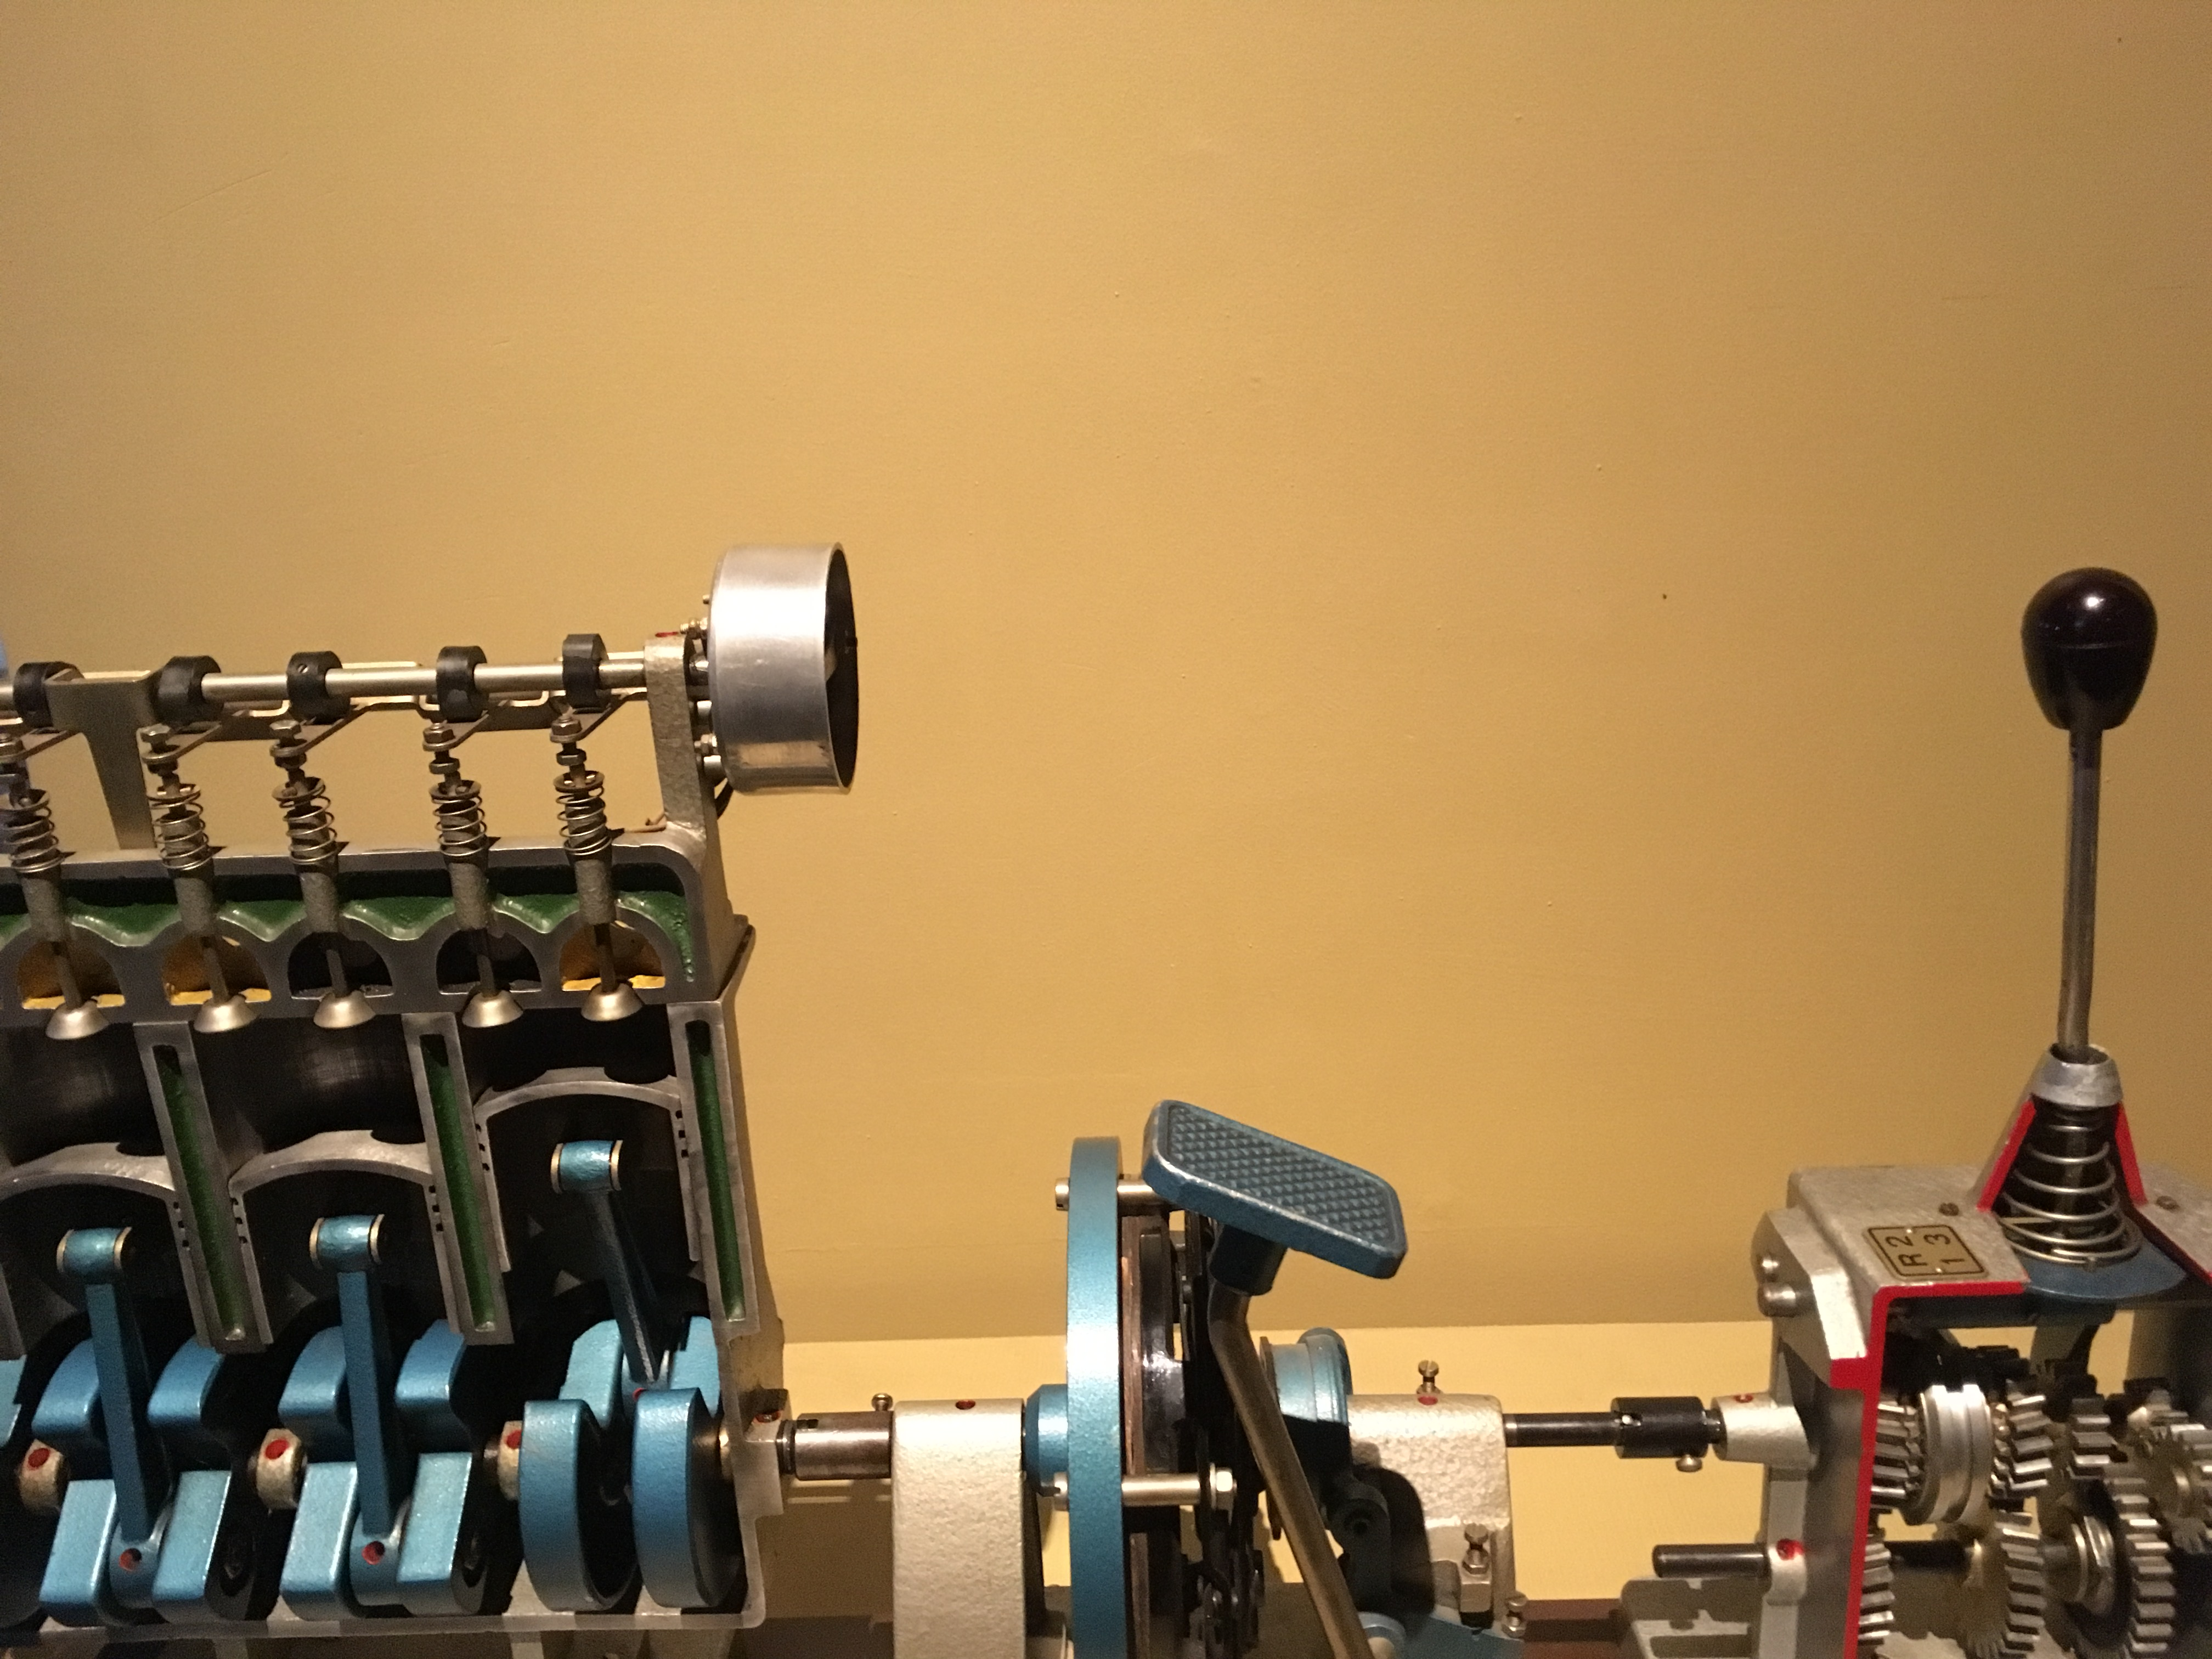 A working model of a car's  gearshift assembly